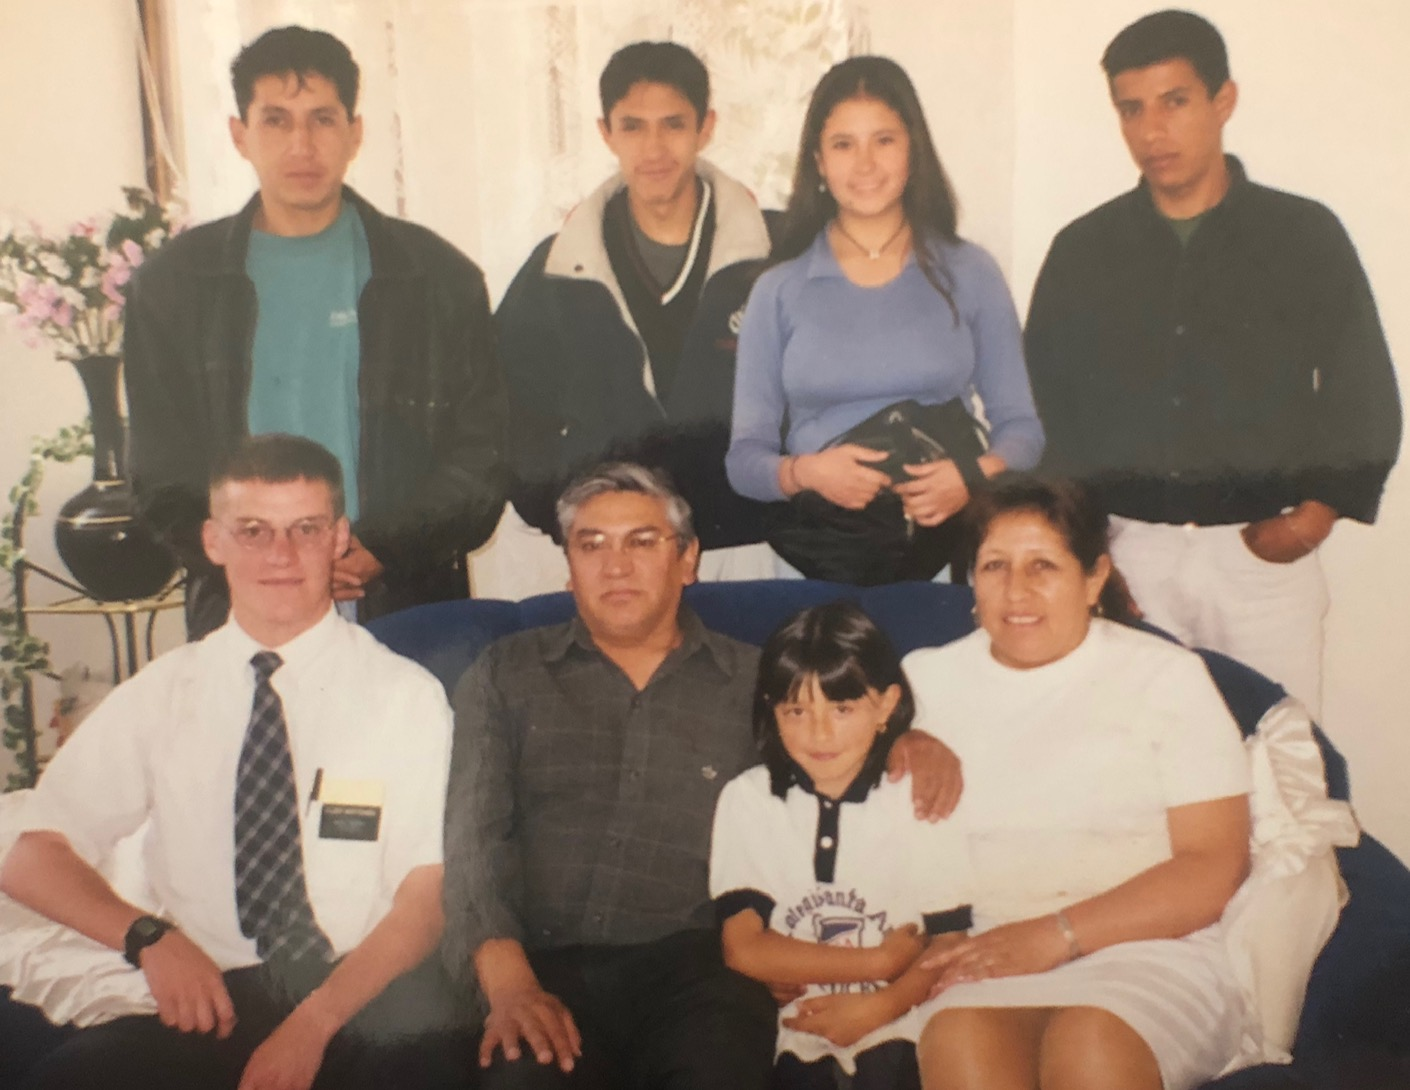 Elder Scott Mortensen (front left) with the Perez Quiroz family when he taught them in Sucre, Bolivia 20 years ago.